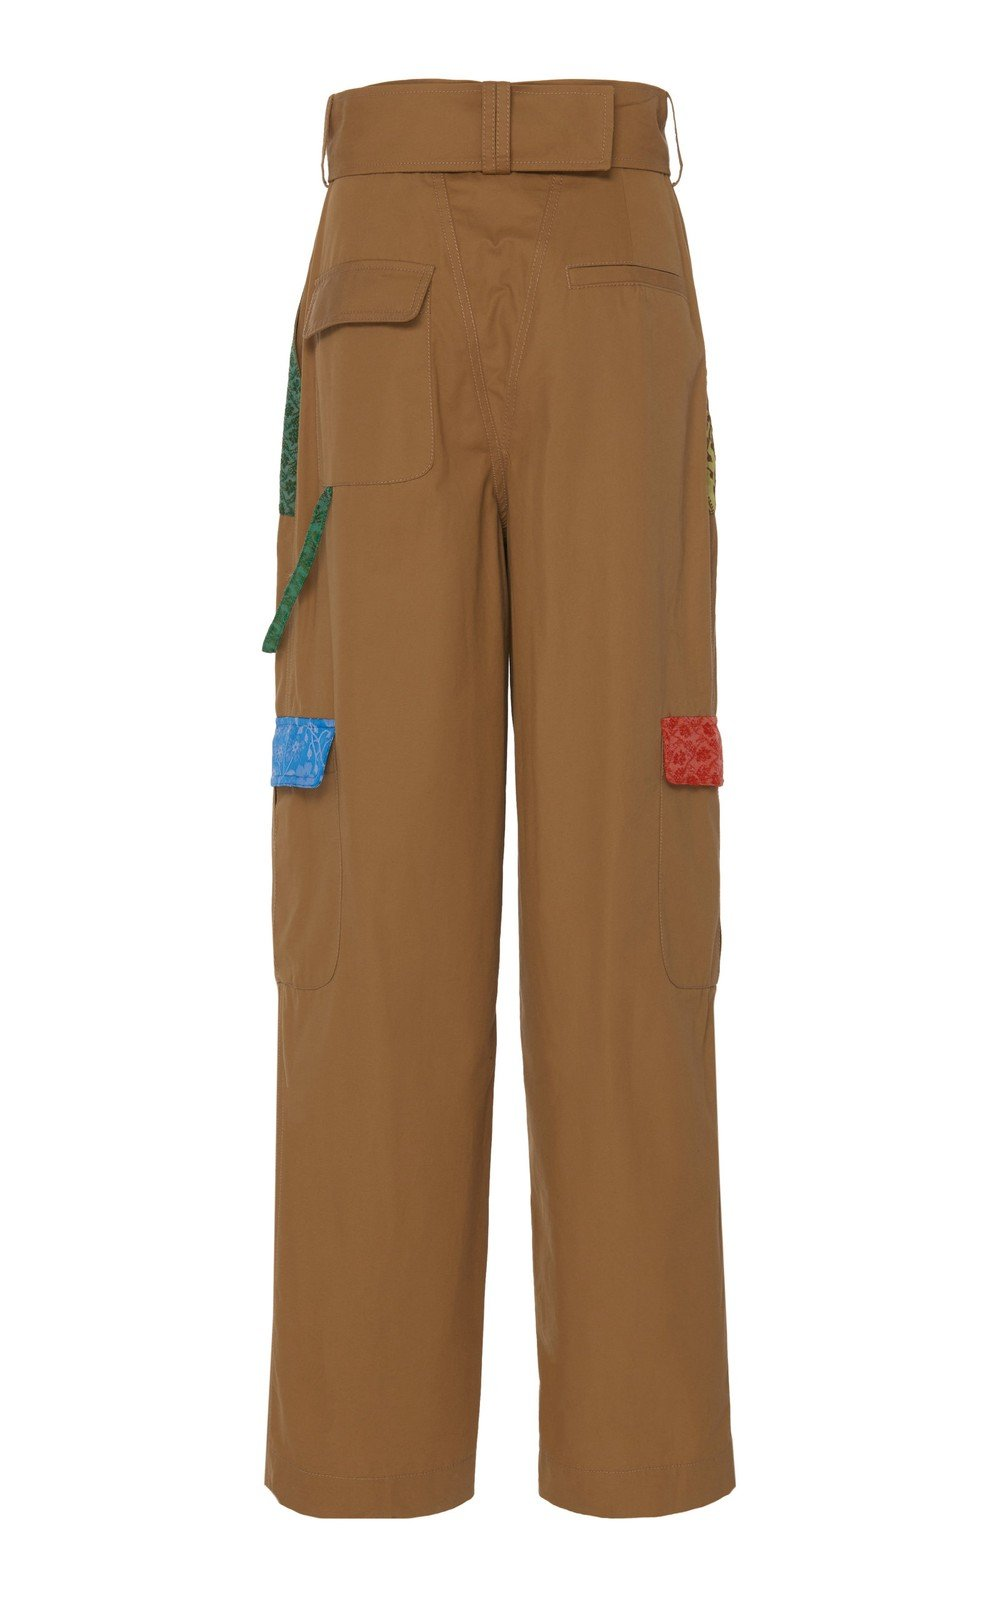 Patchwork Pants